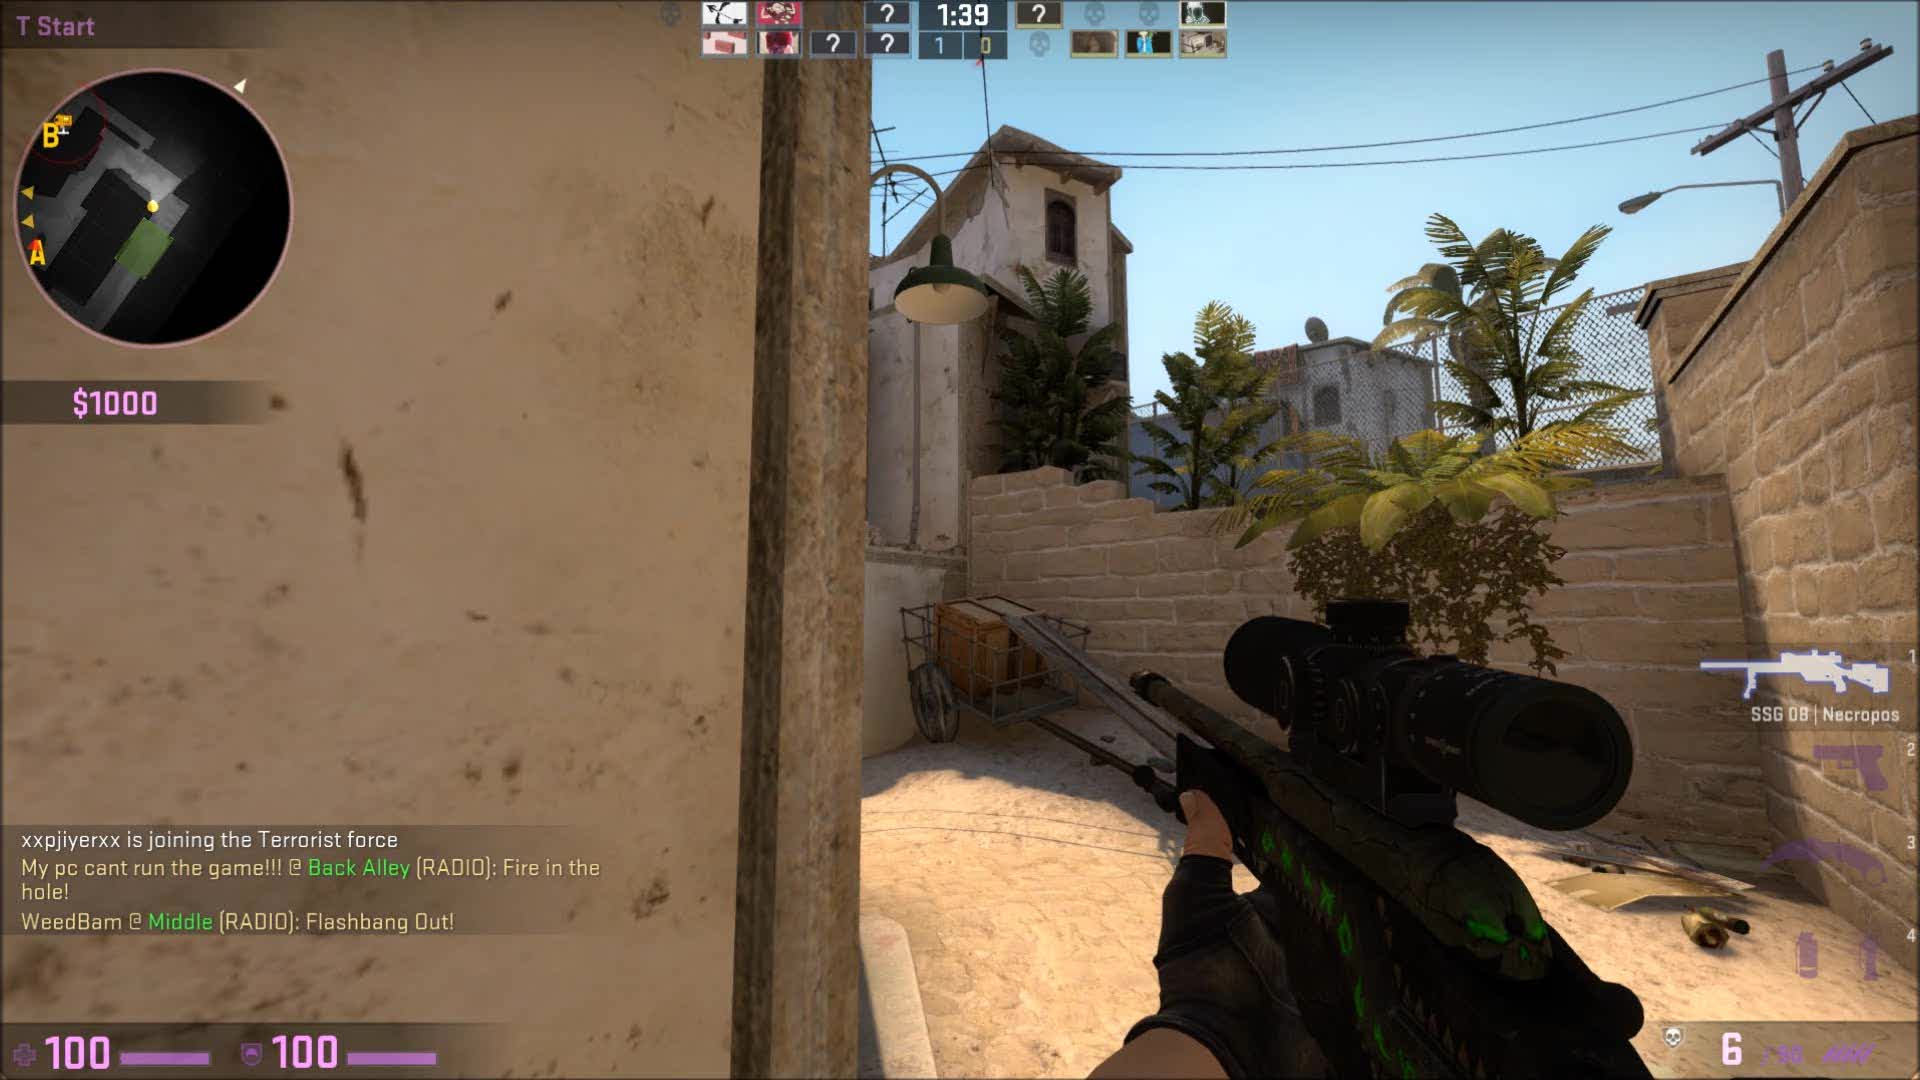 counterstrike, Casual Explained GIFs